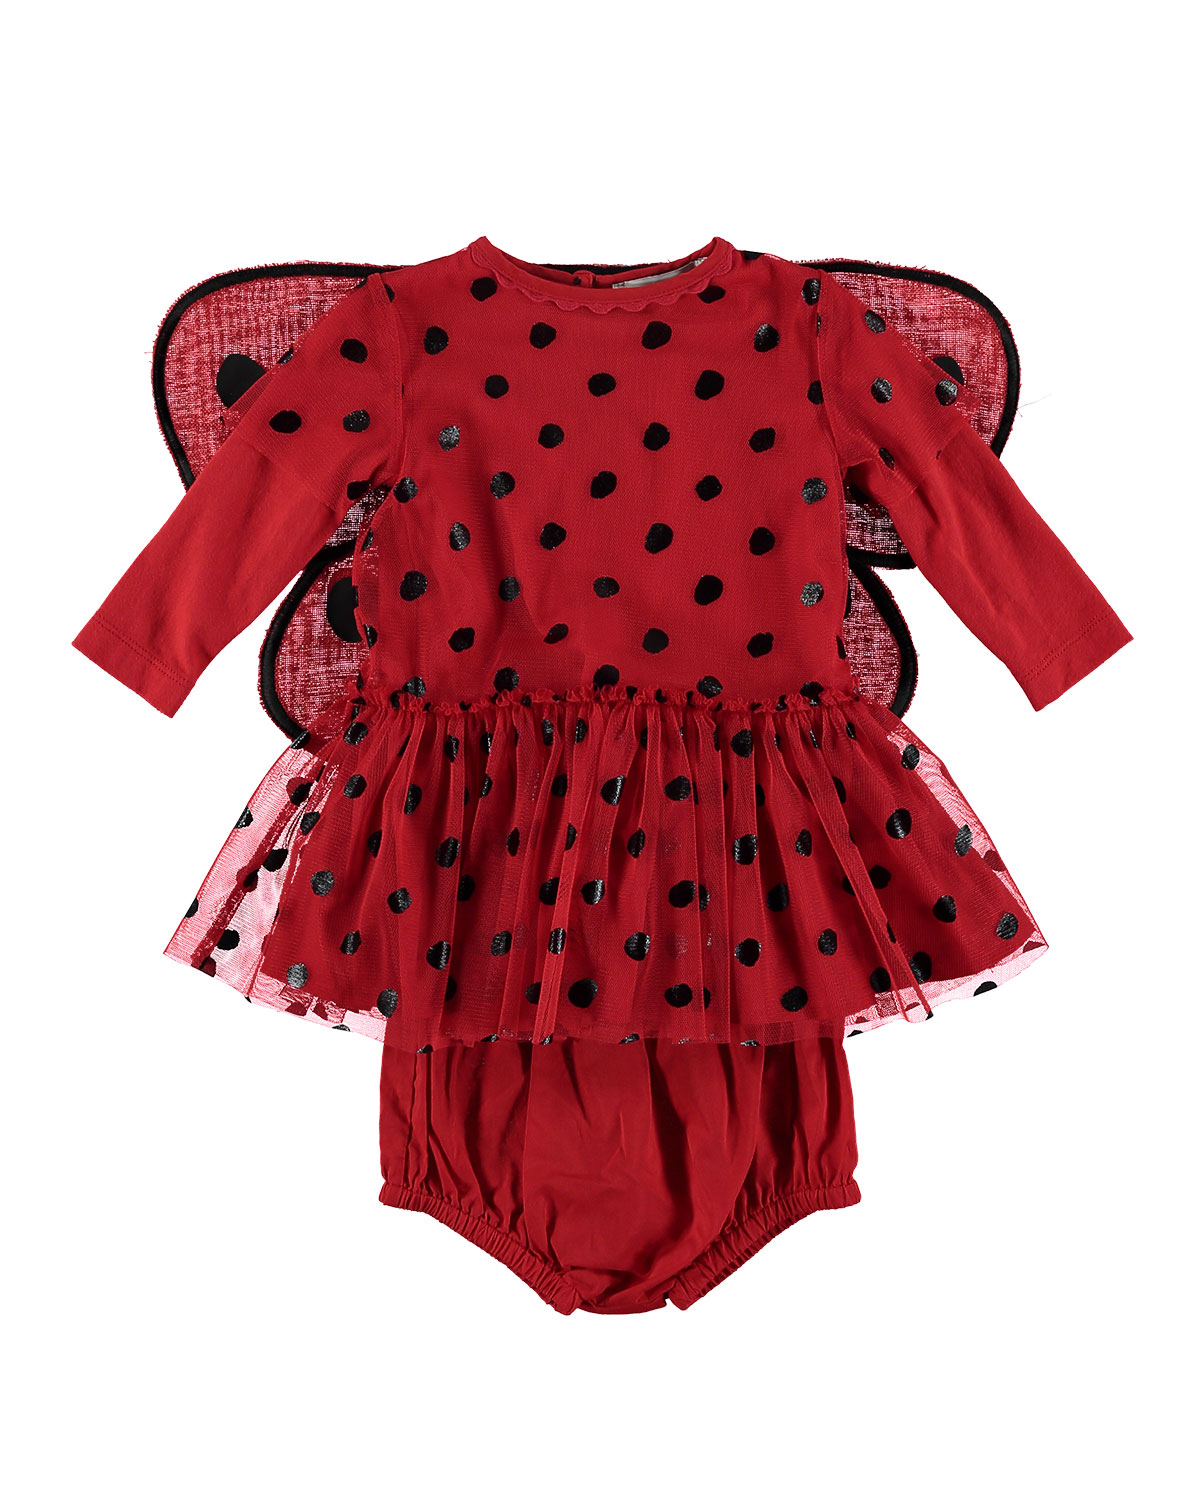 Ladybug Tulle Dress w 3D Wings Size 636 Months